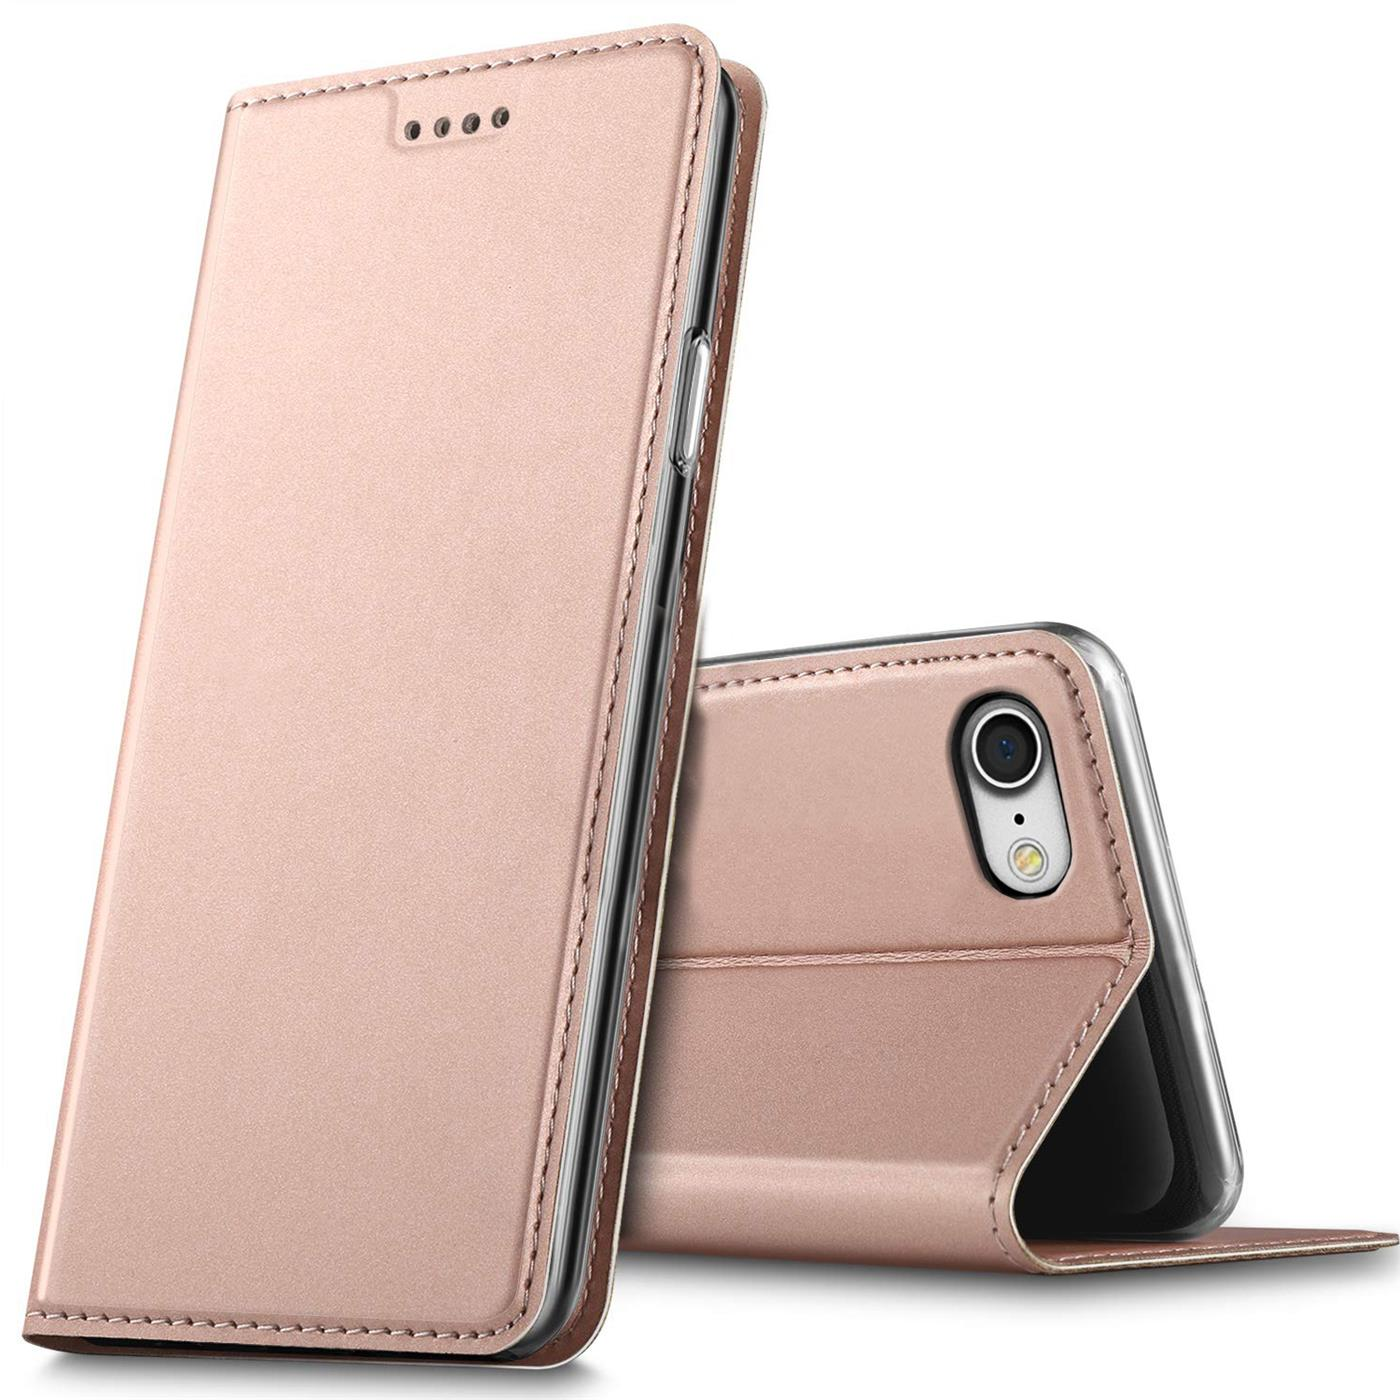 Apple-iPhone-5-5s-SE-Shockproof-Wallet-Slim-Cover-Phone-PU-Leather-Flip-Case thumbnail 14